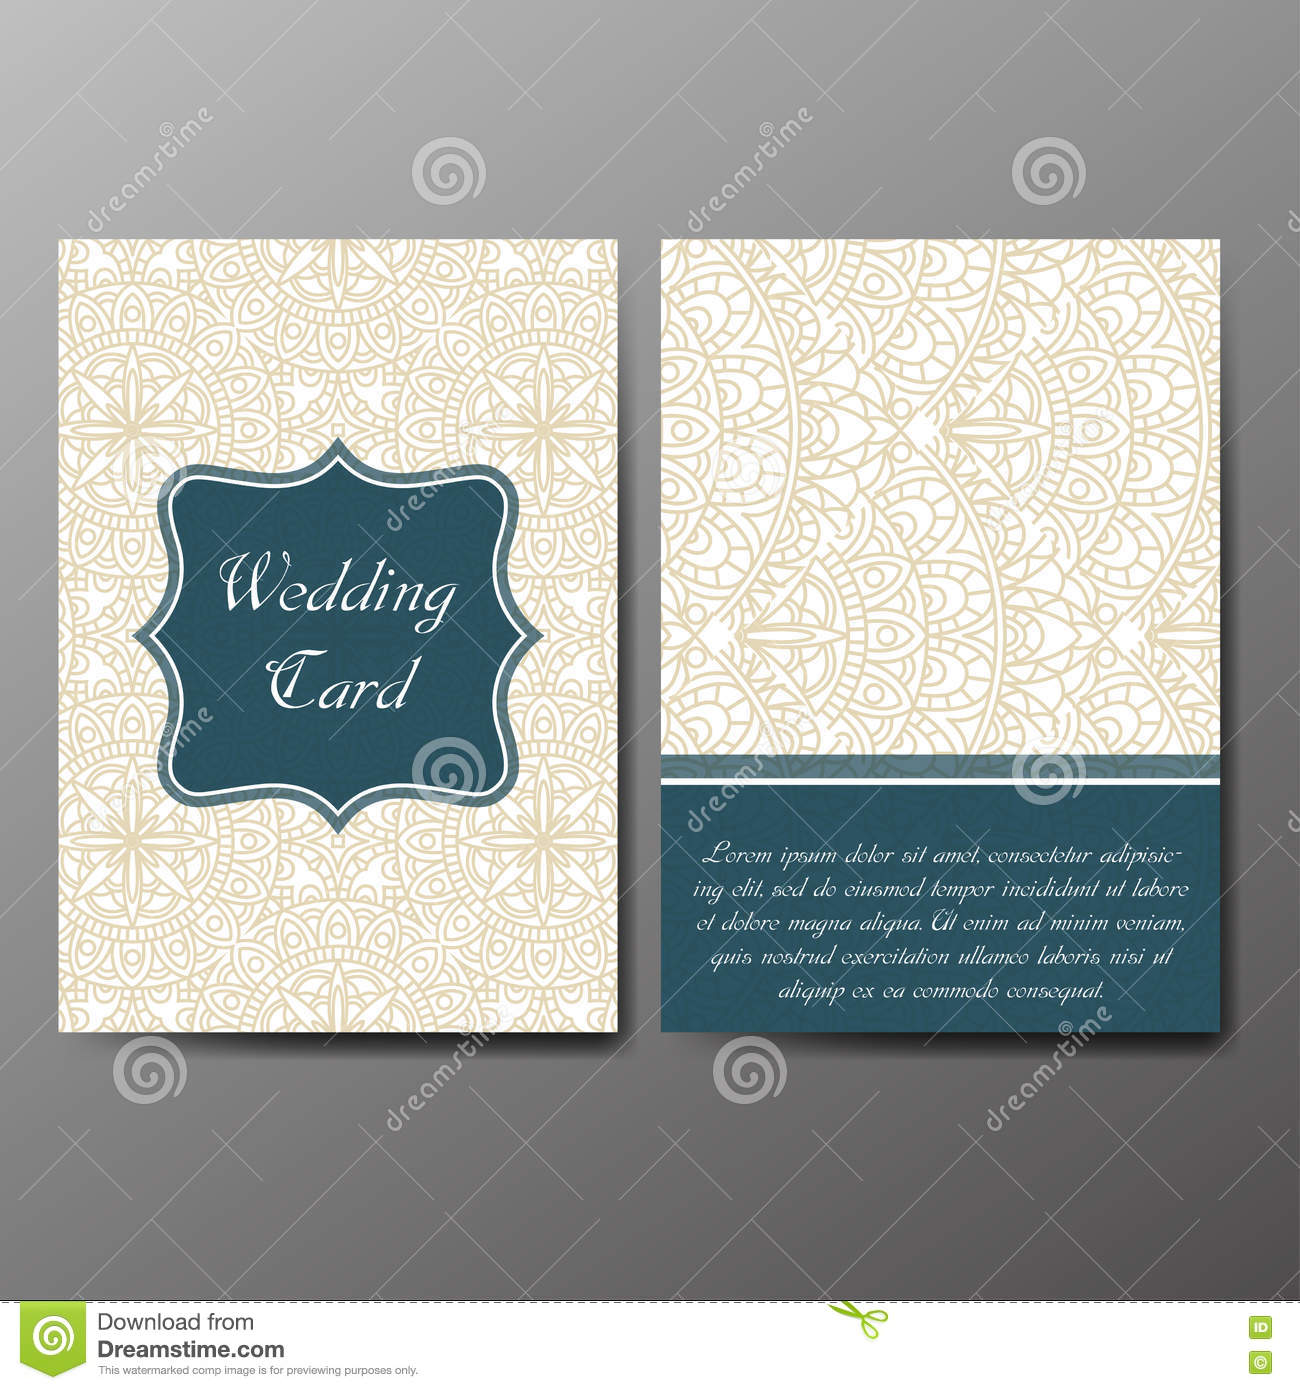 Wedding Card Collection Template Of Invitation Card Decorative